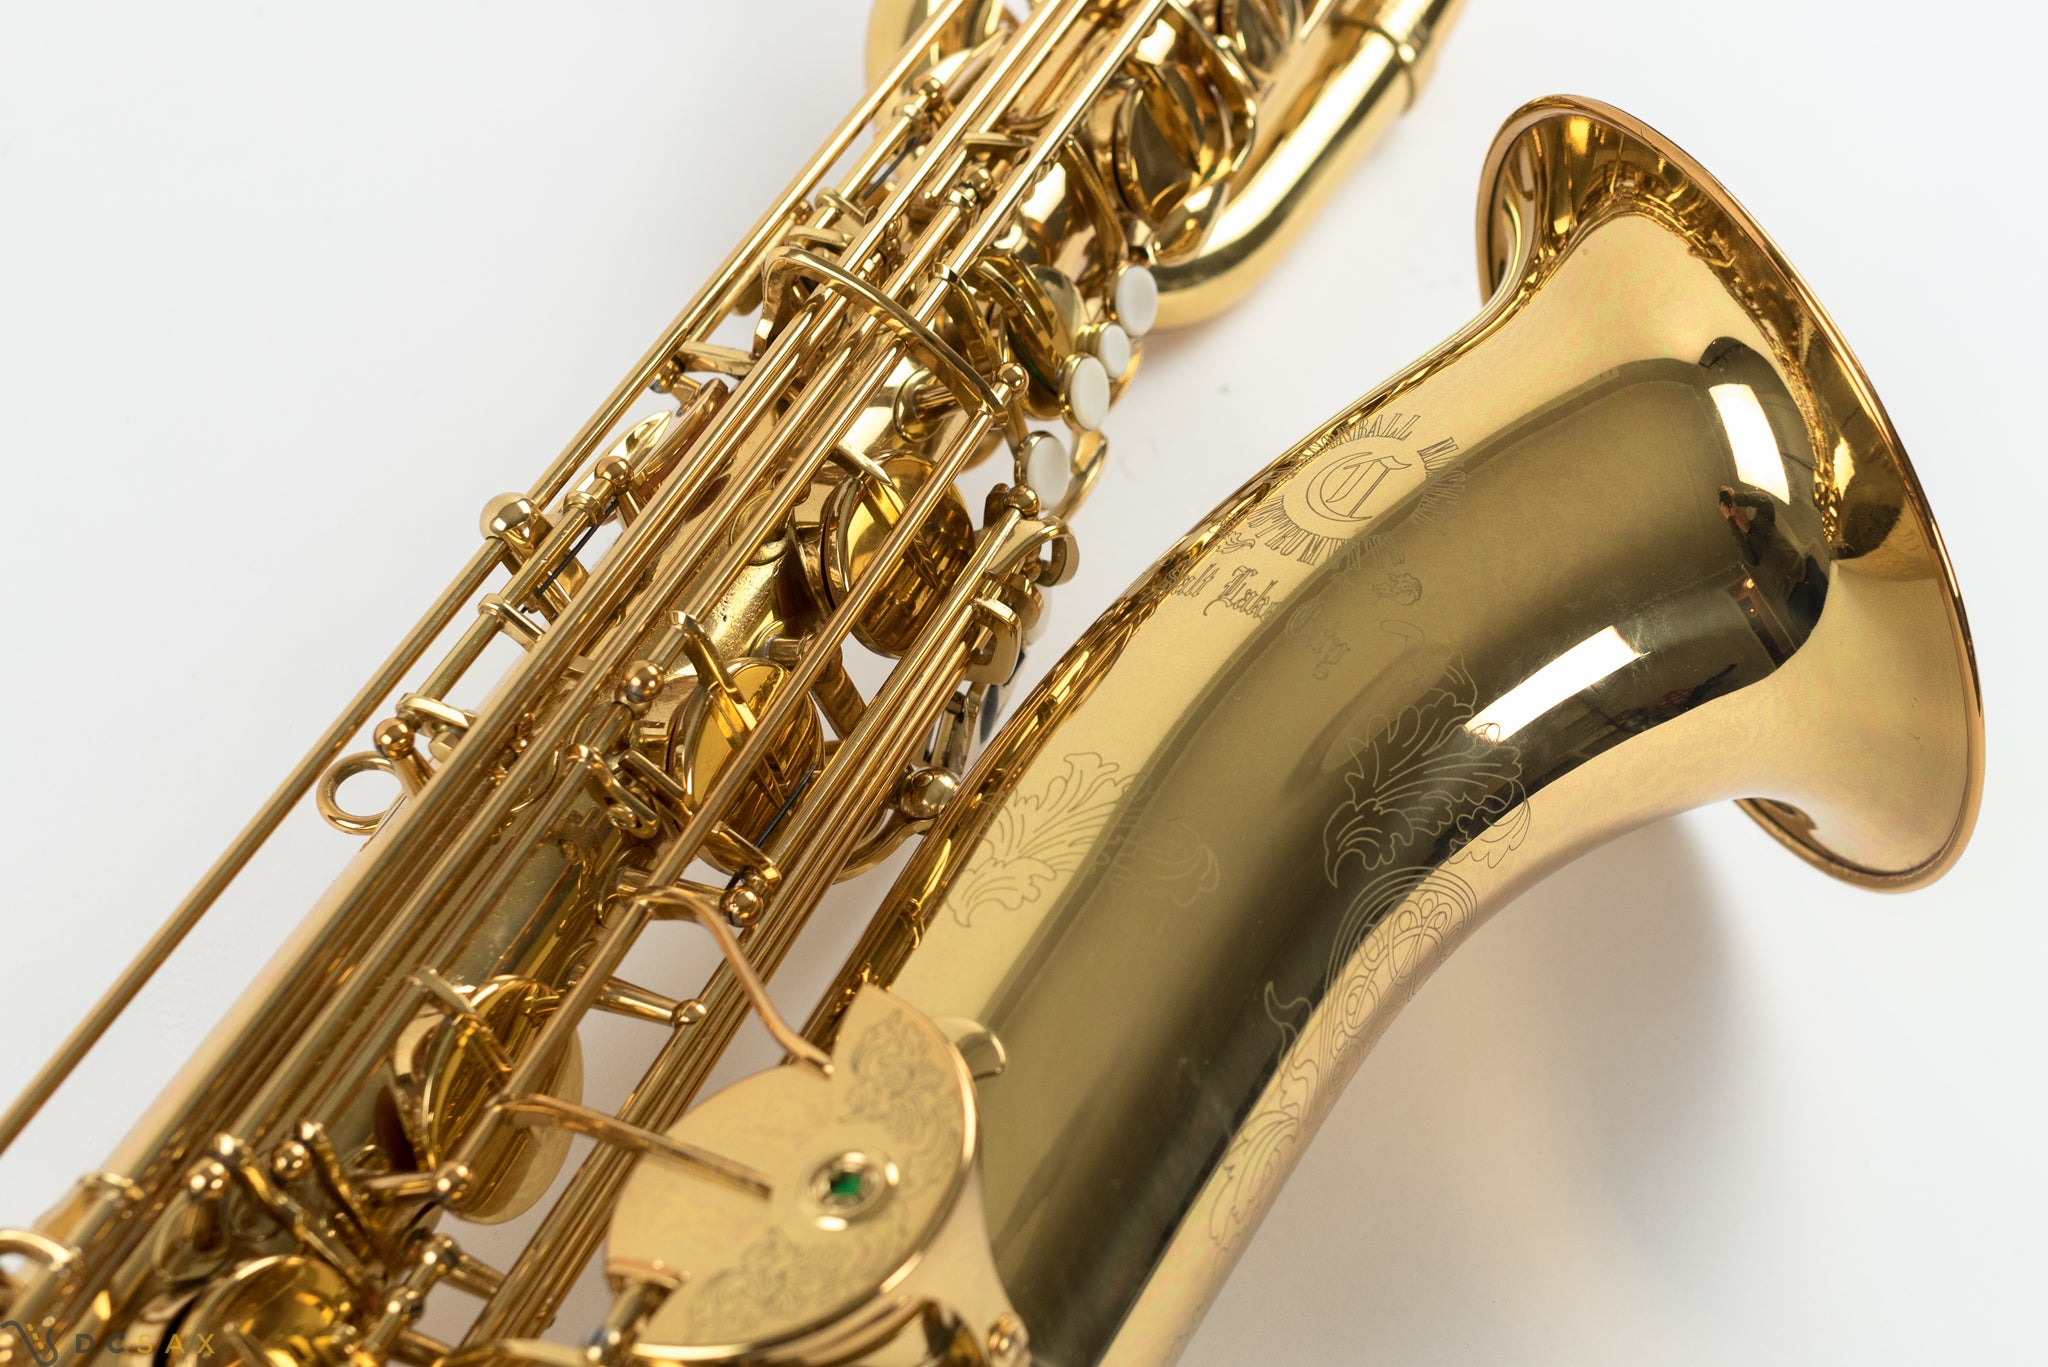 Cannonball Big Bell Series Baritone Saxophone, Just Serviced